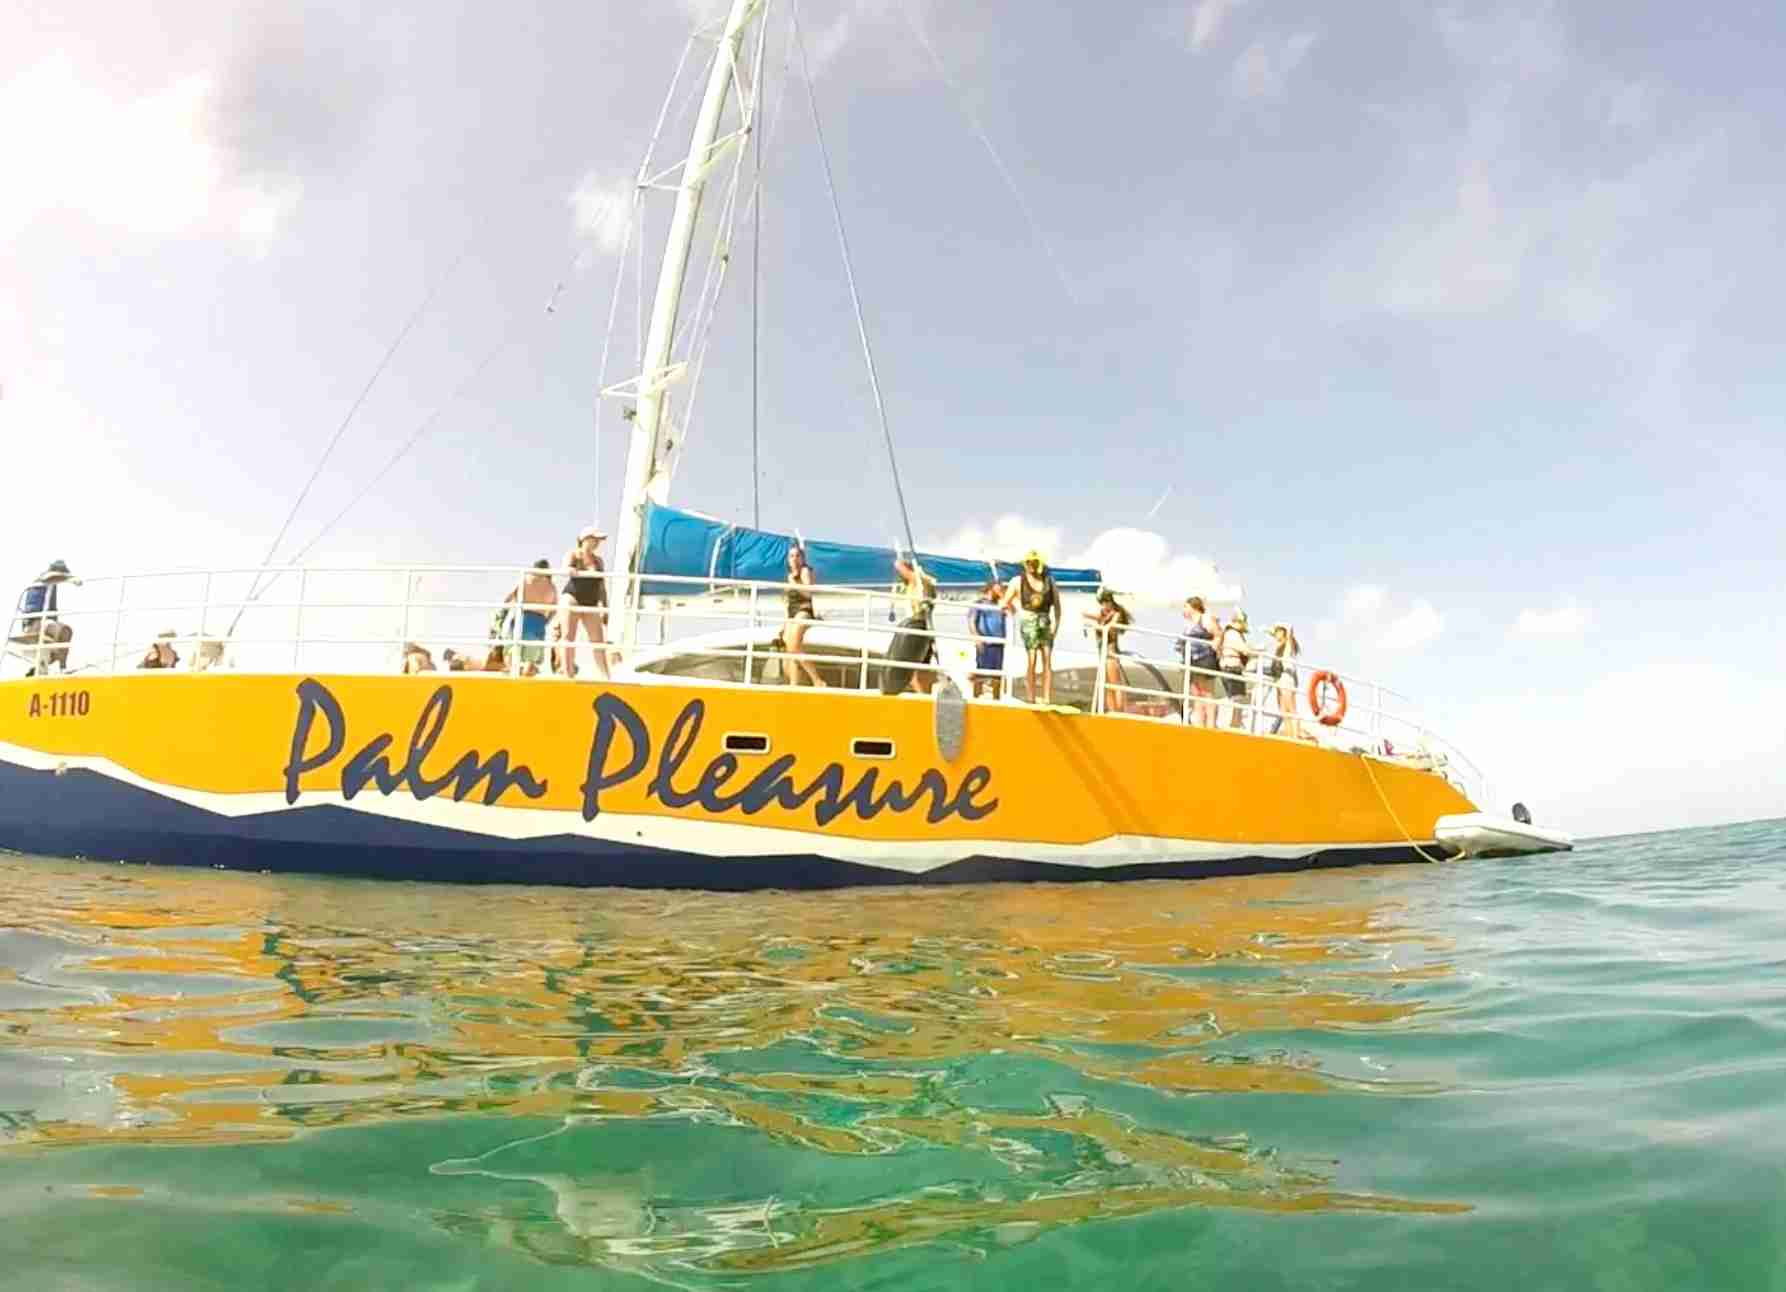 Aruba catamaran tour